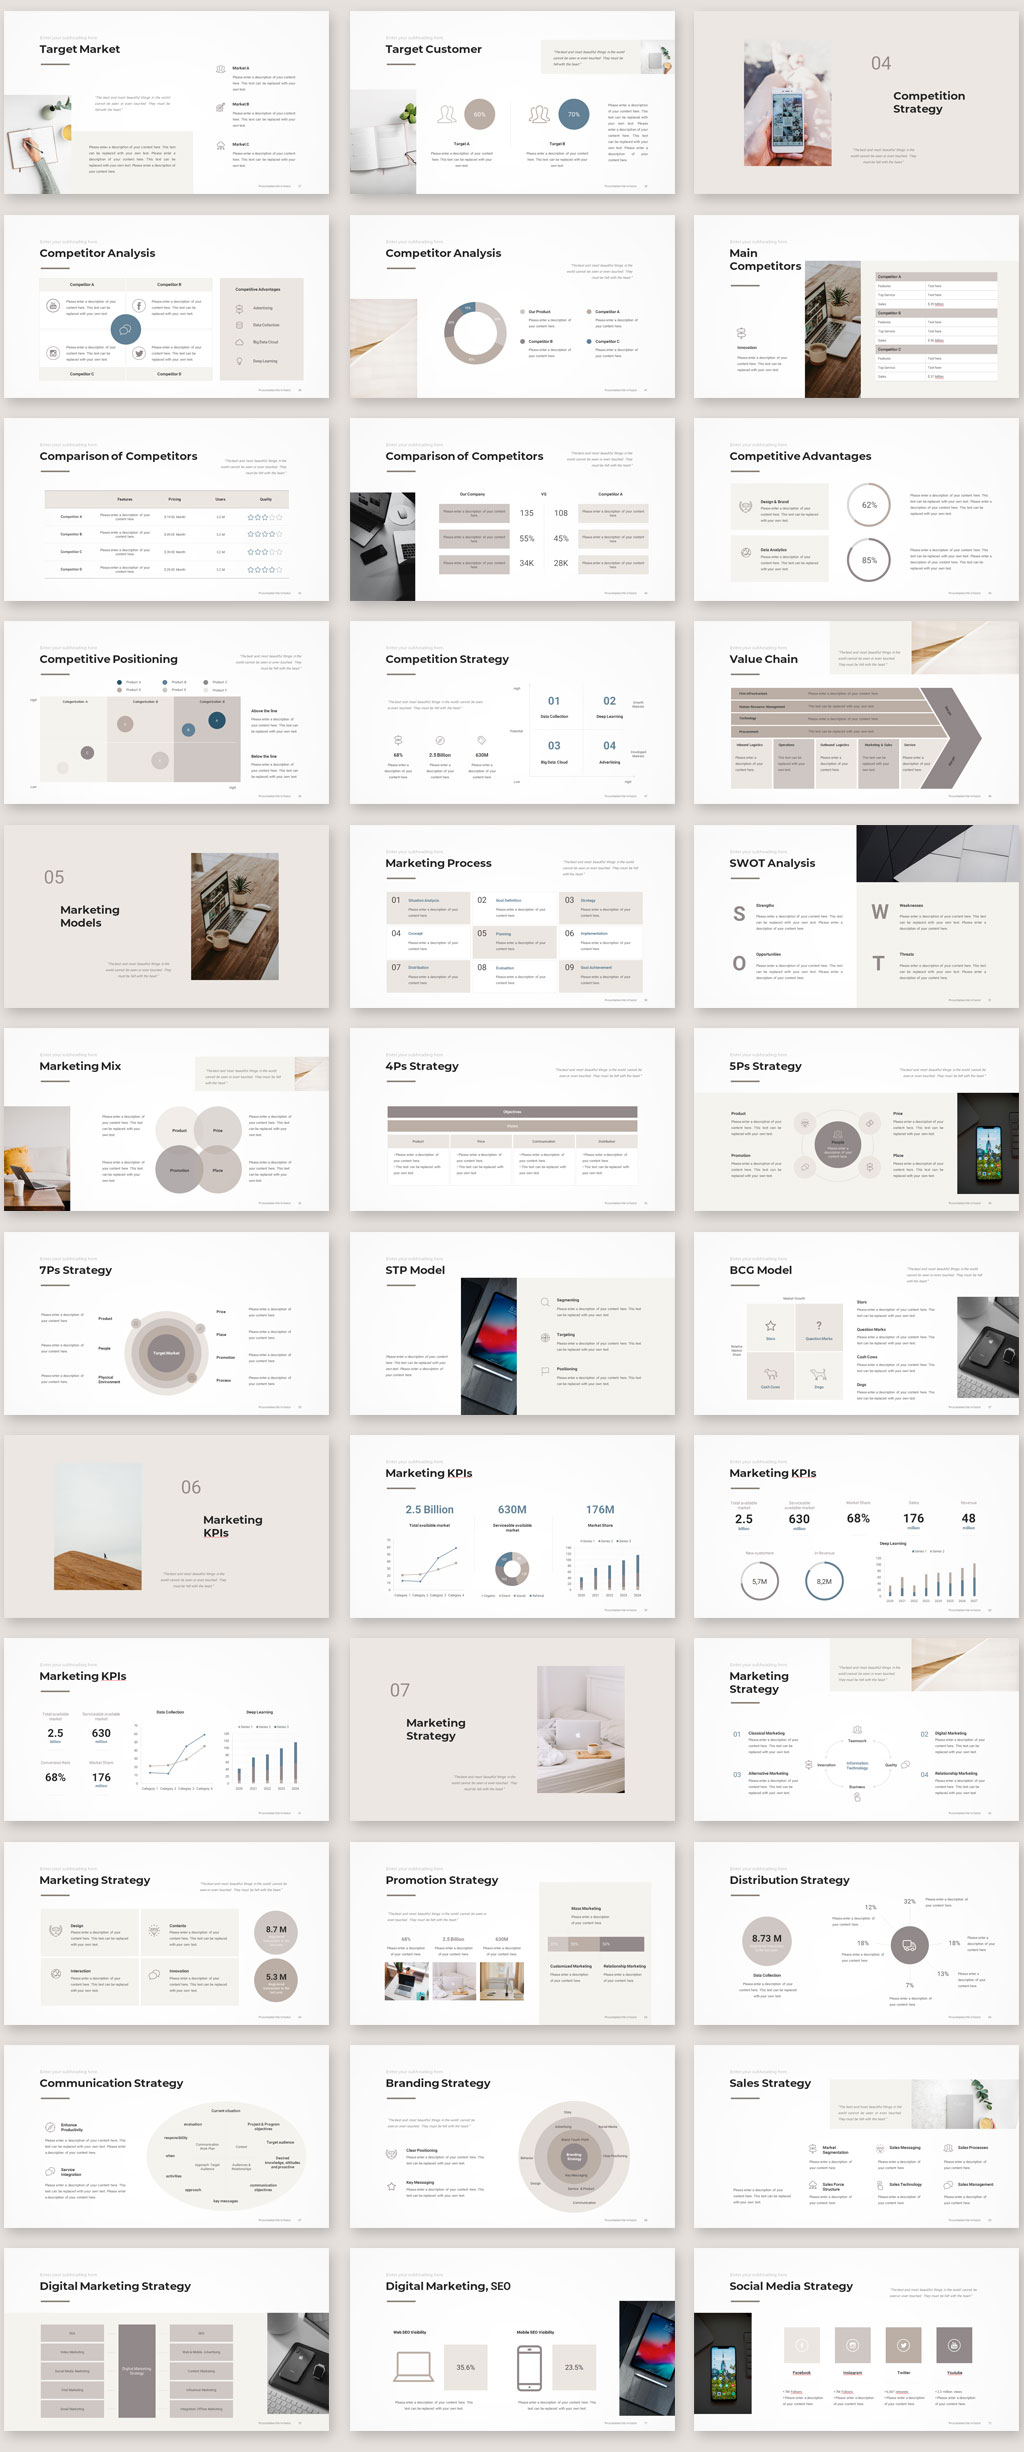 Marketing Plan Template 2020 Preview02